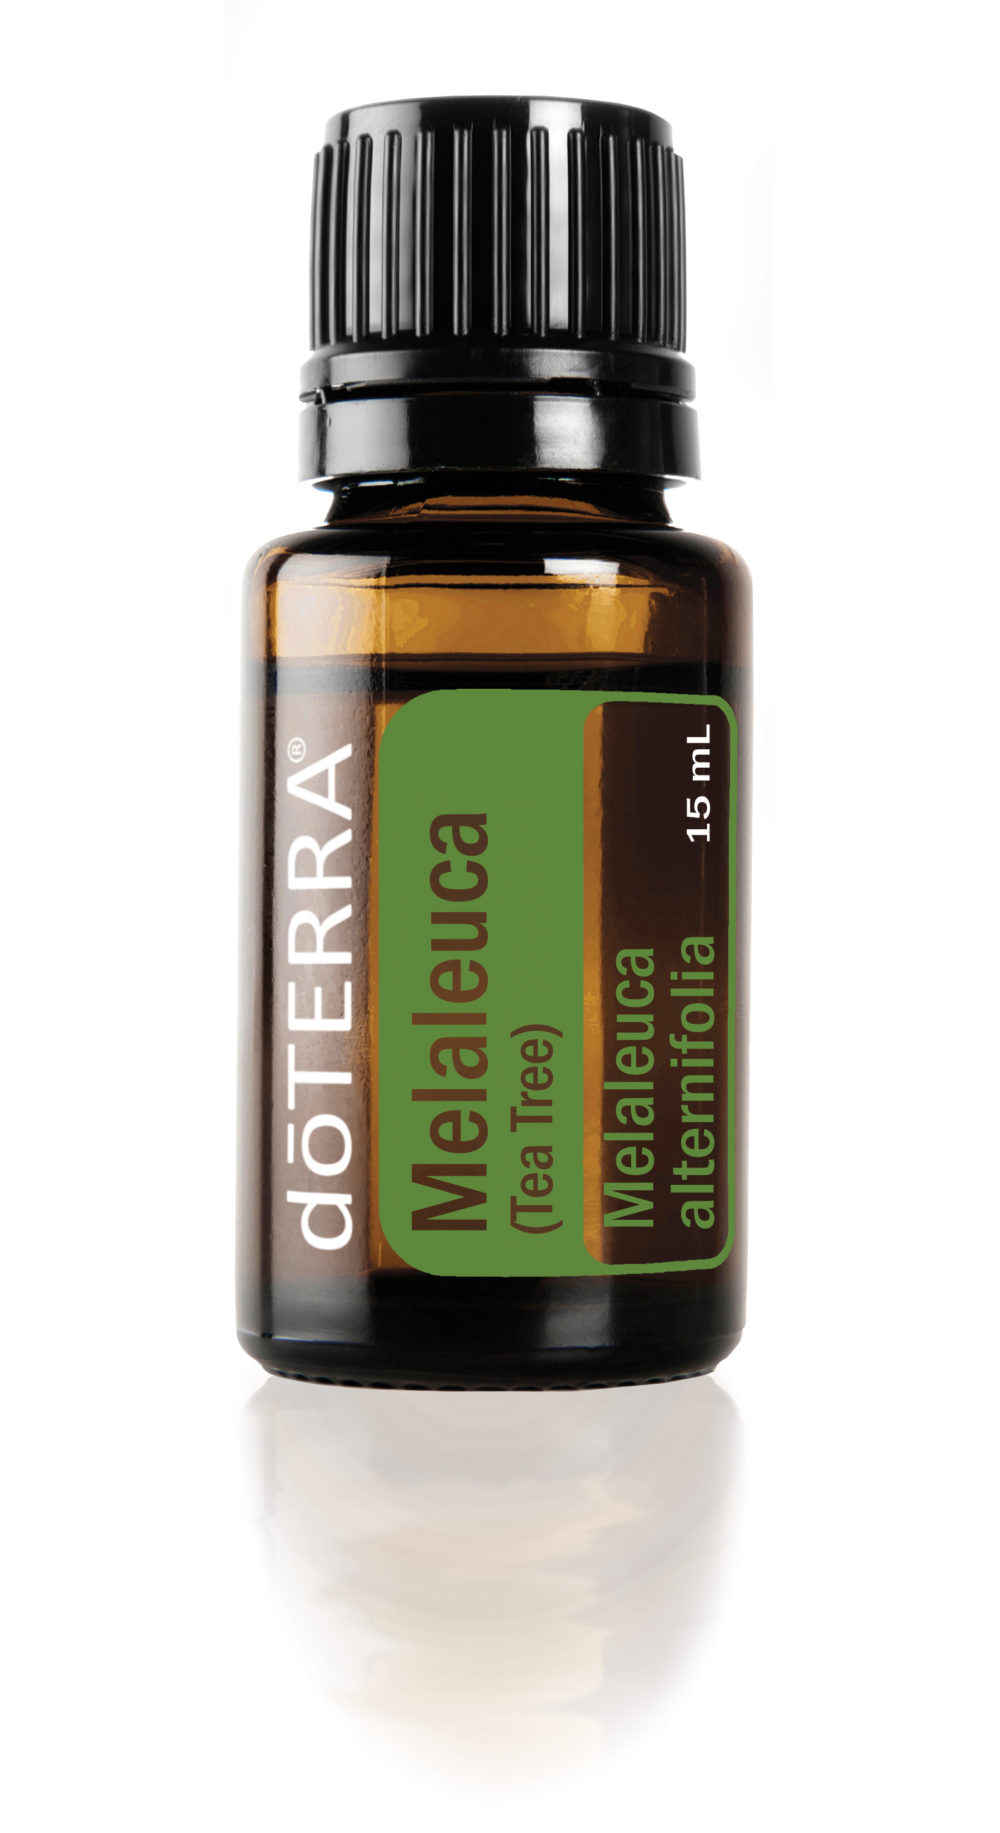 DoTERRA Melaleuca (Tea Tree) Essential Oil - Melaleuca alternifolia